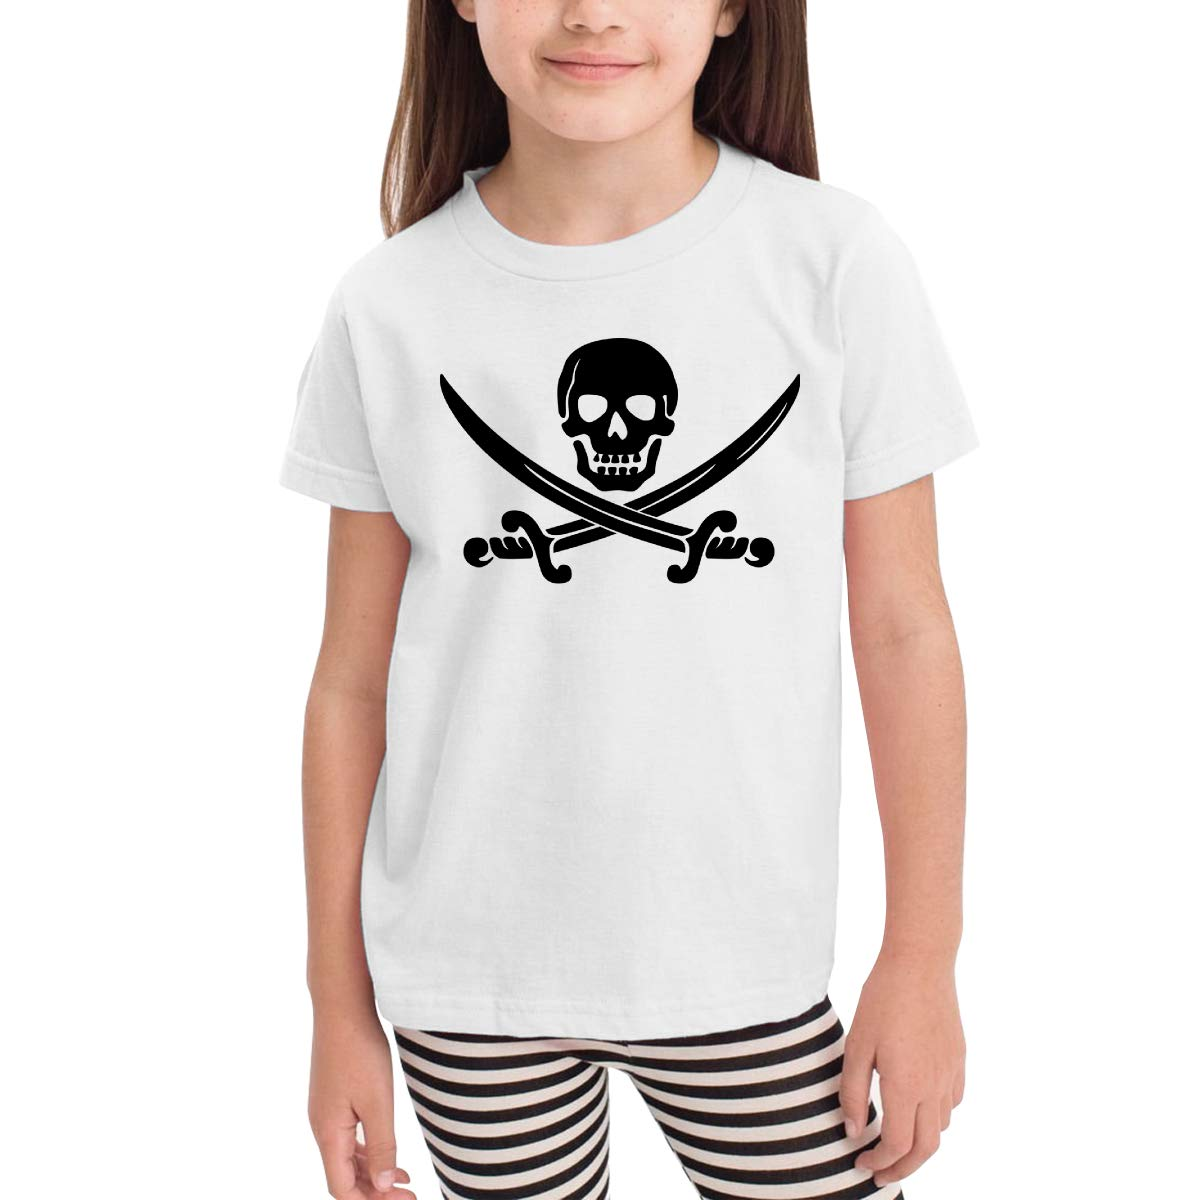 Onlybabycare Black Skull 100/% Cotton Toddler Baby Boys Girls Kids Short Sleeve T Shirt Top Tee Clothes 2-6 T